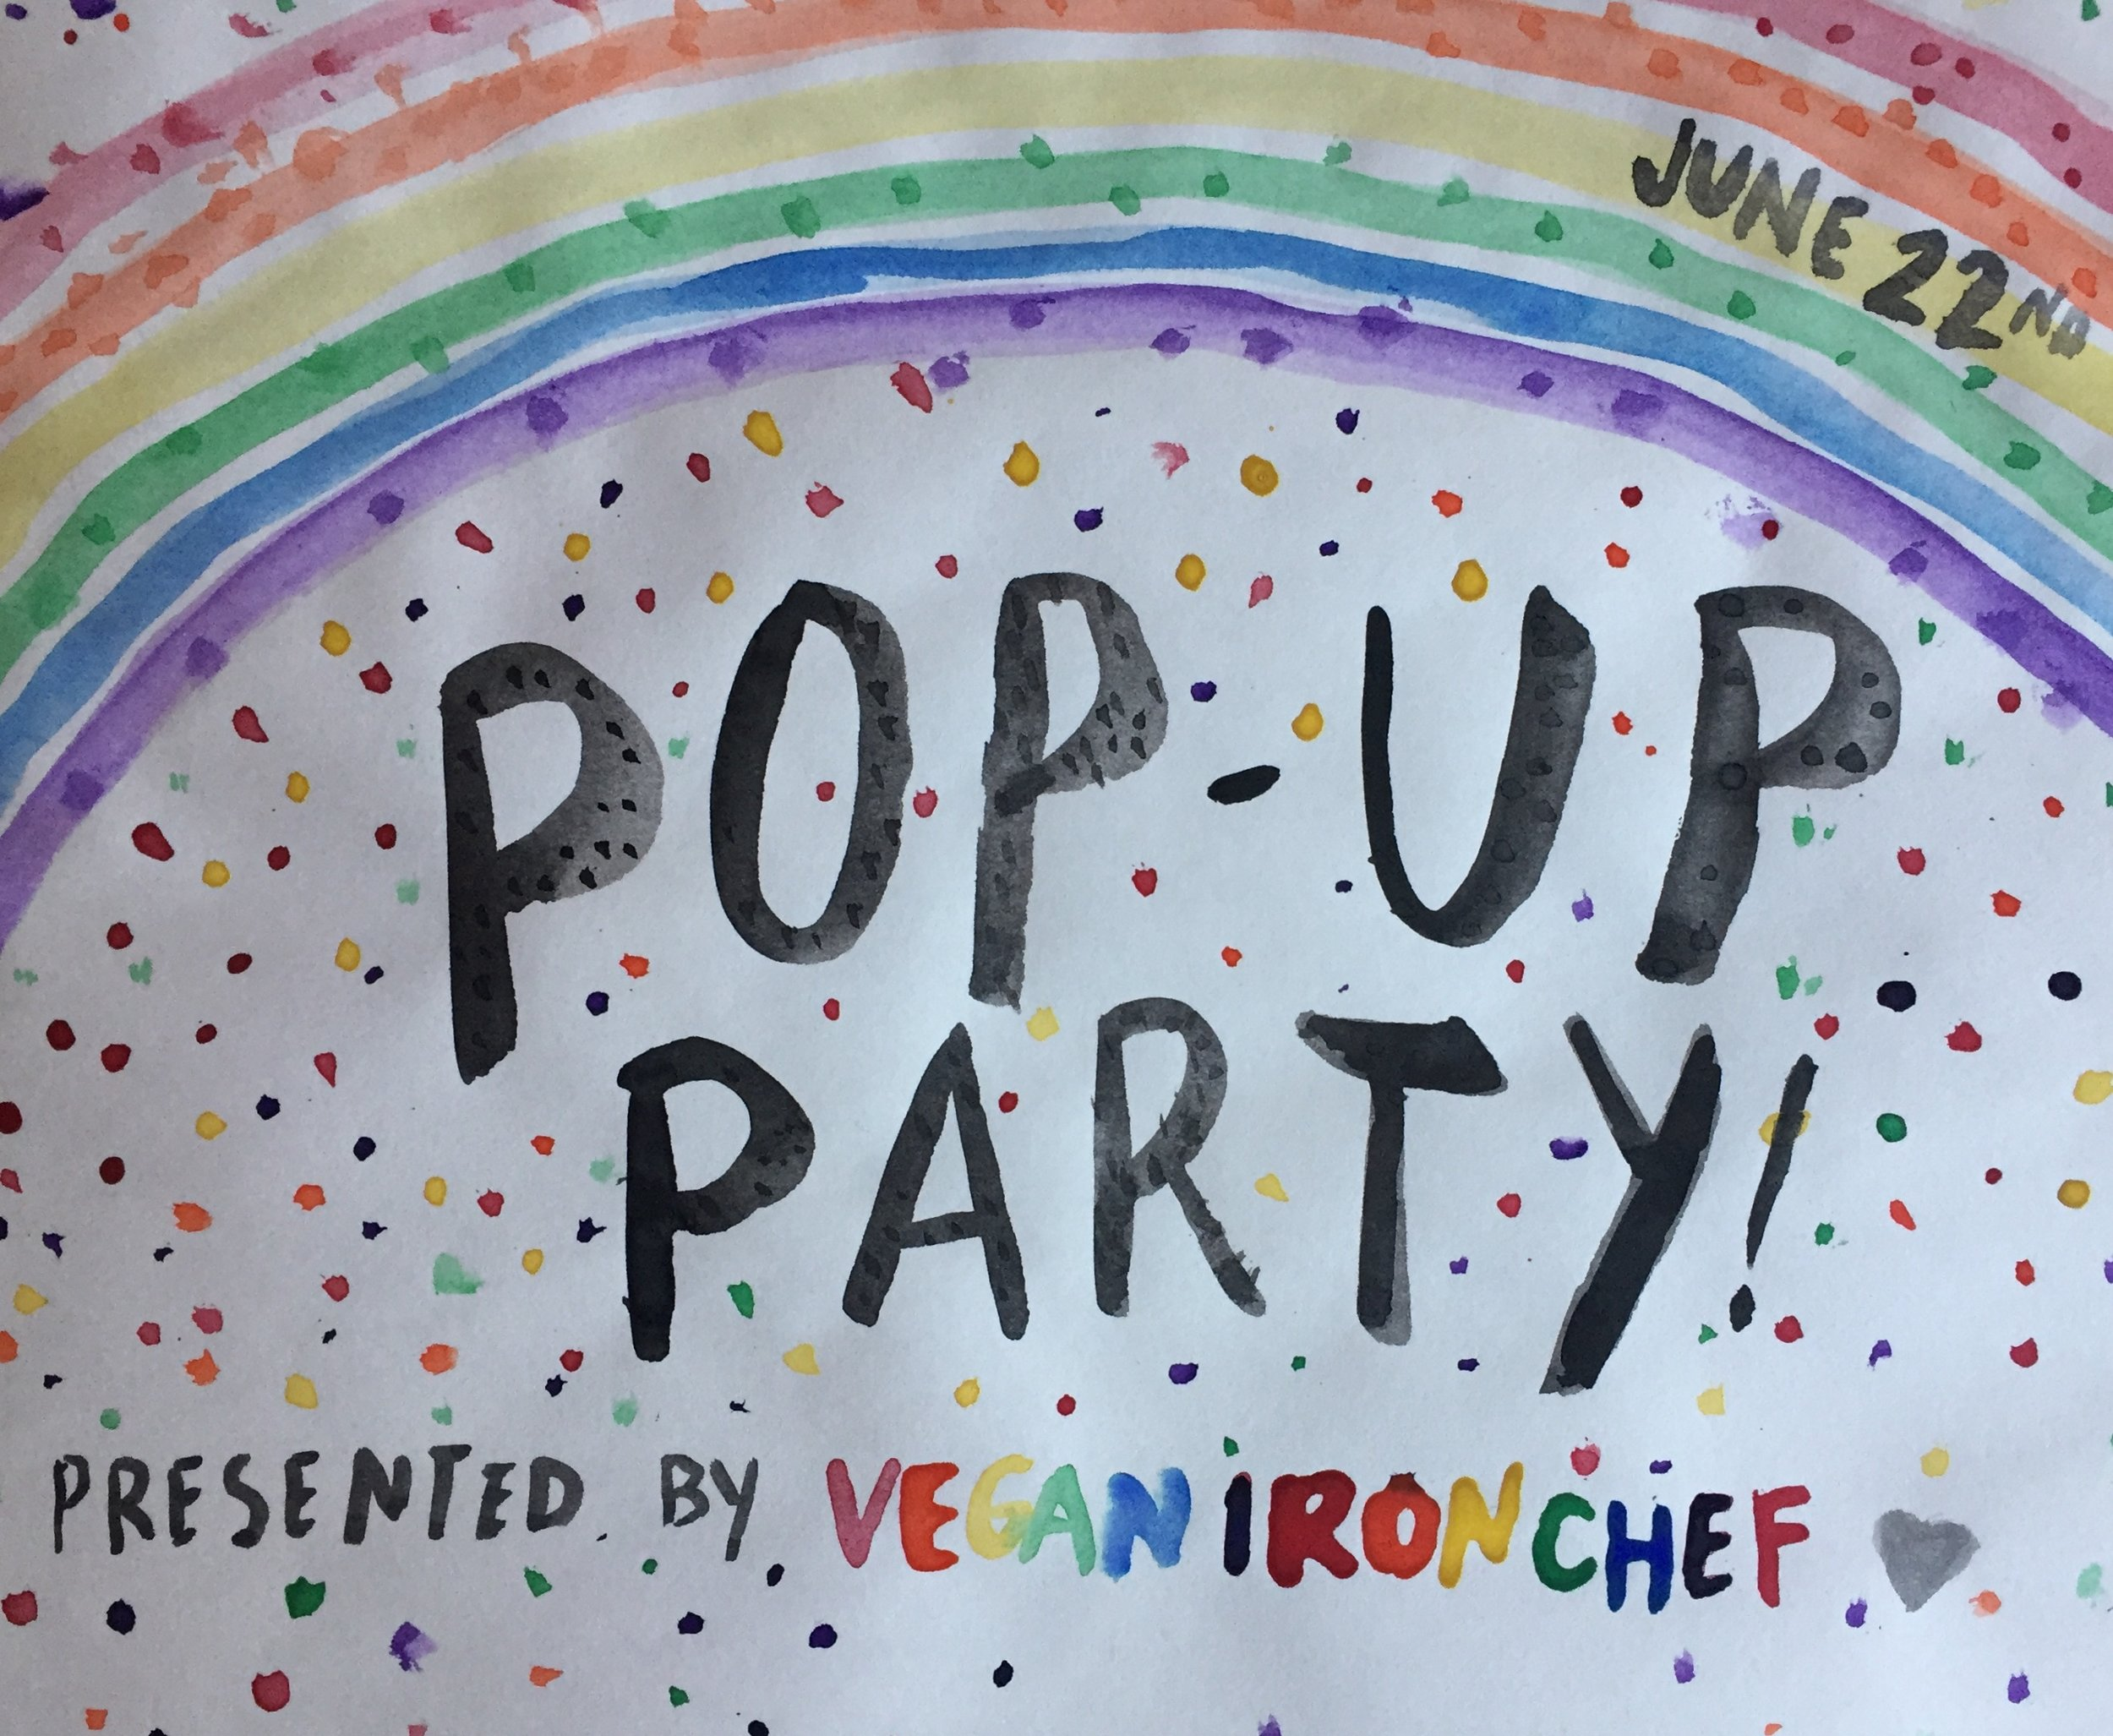 pop up party full graphic.jpeg